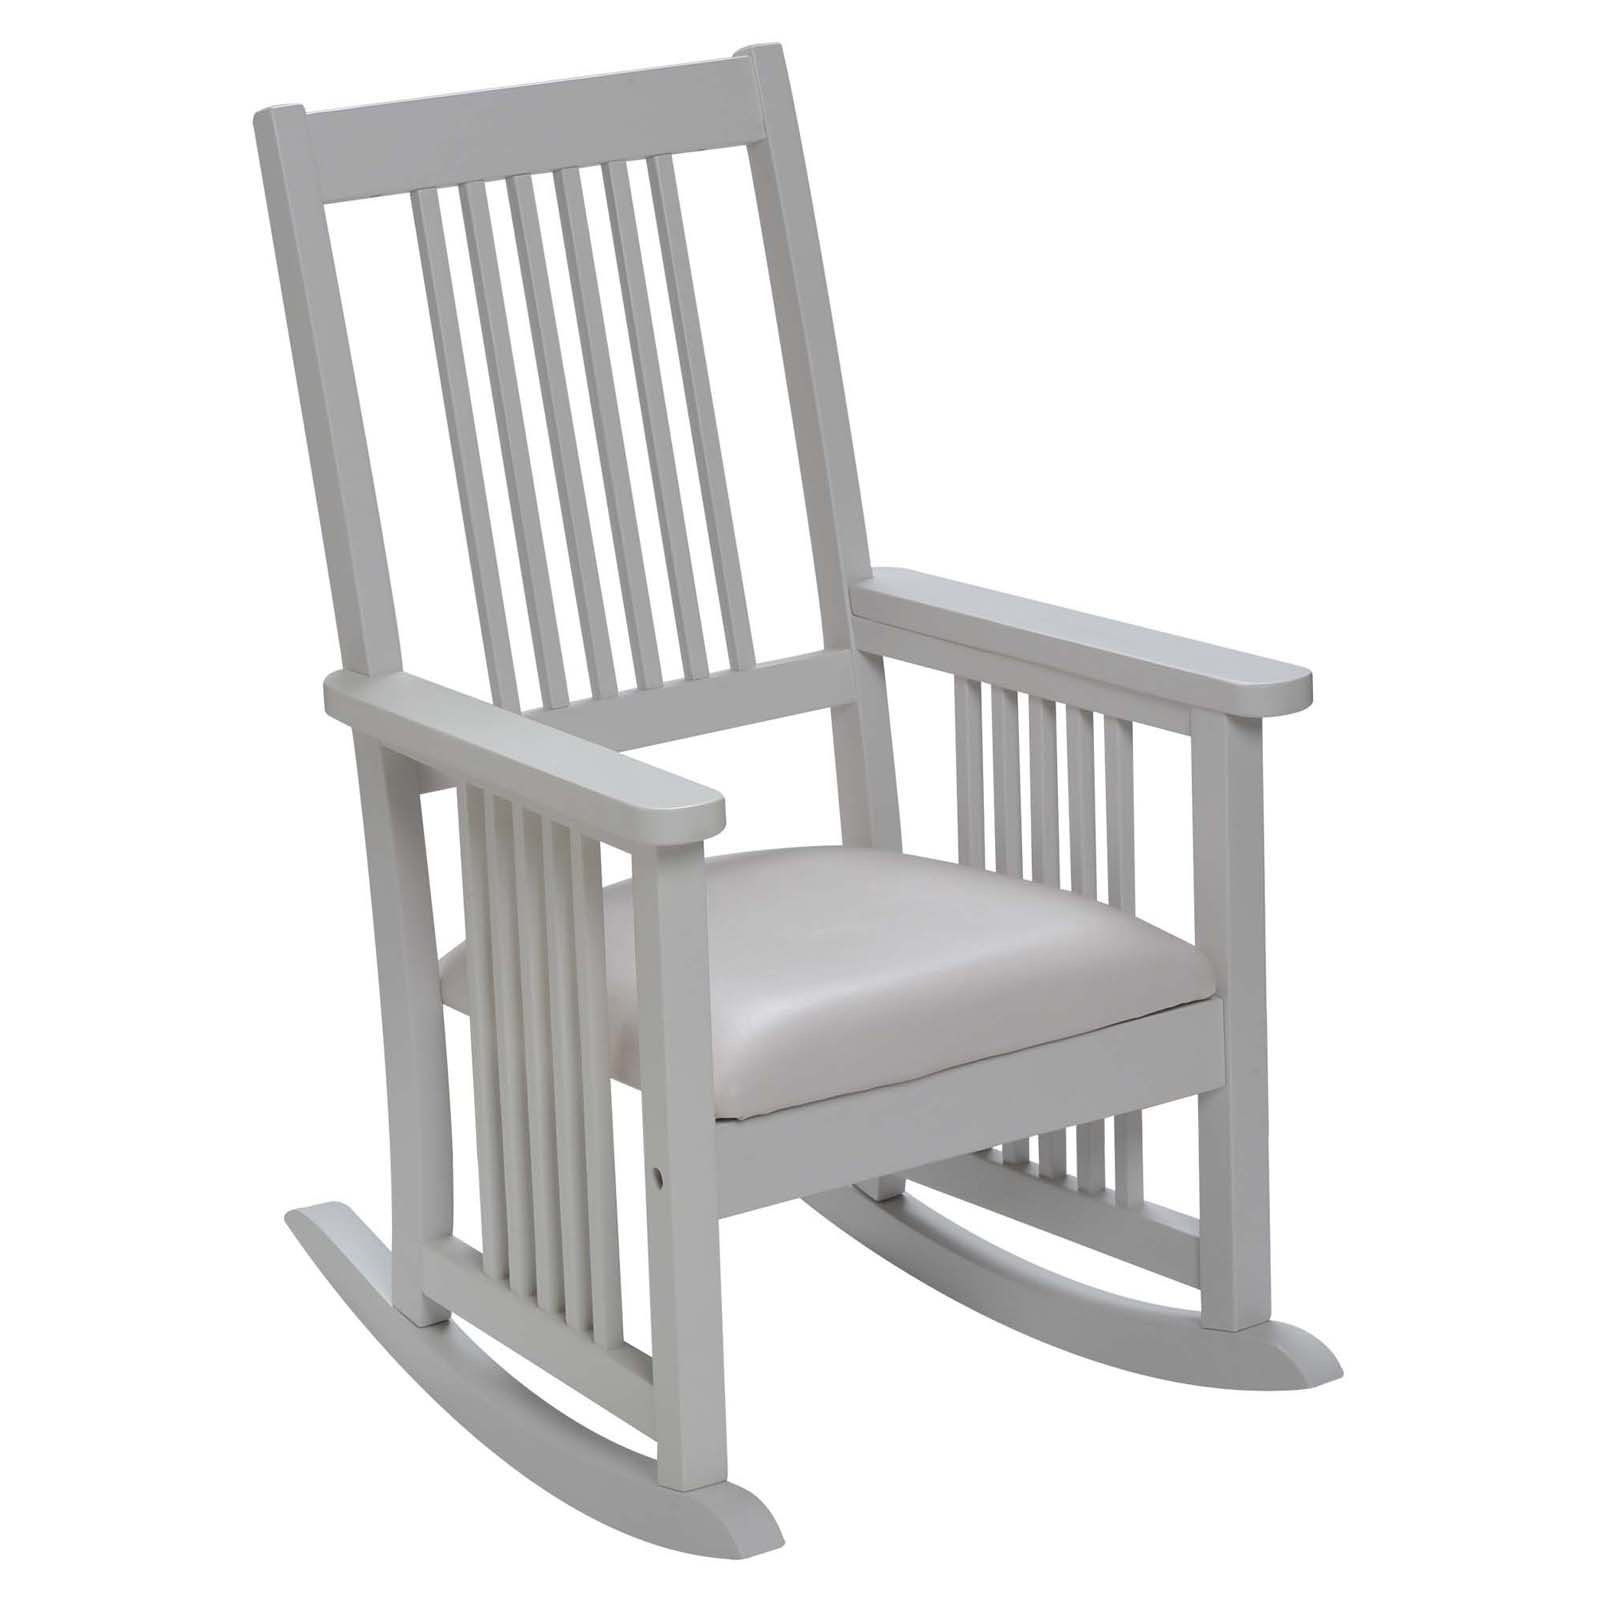 Mission Style Childrens Rocking Chair with Upholstered ...